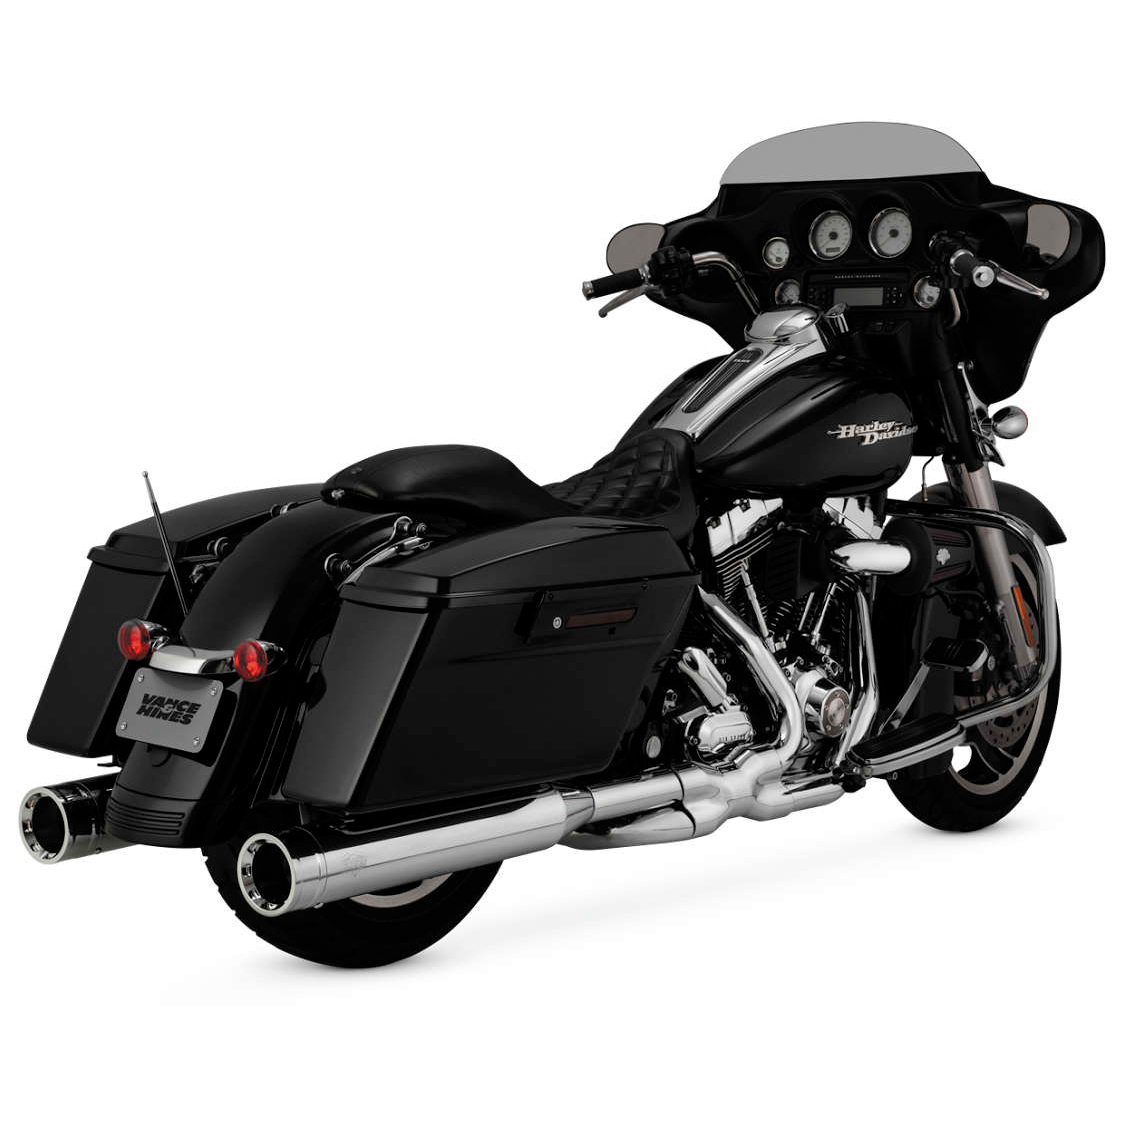 Vance & Hines Power Duals CTR Exhaust System Chrome